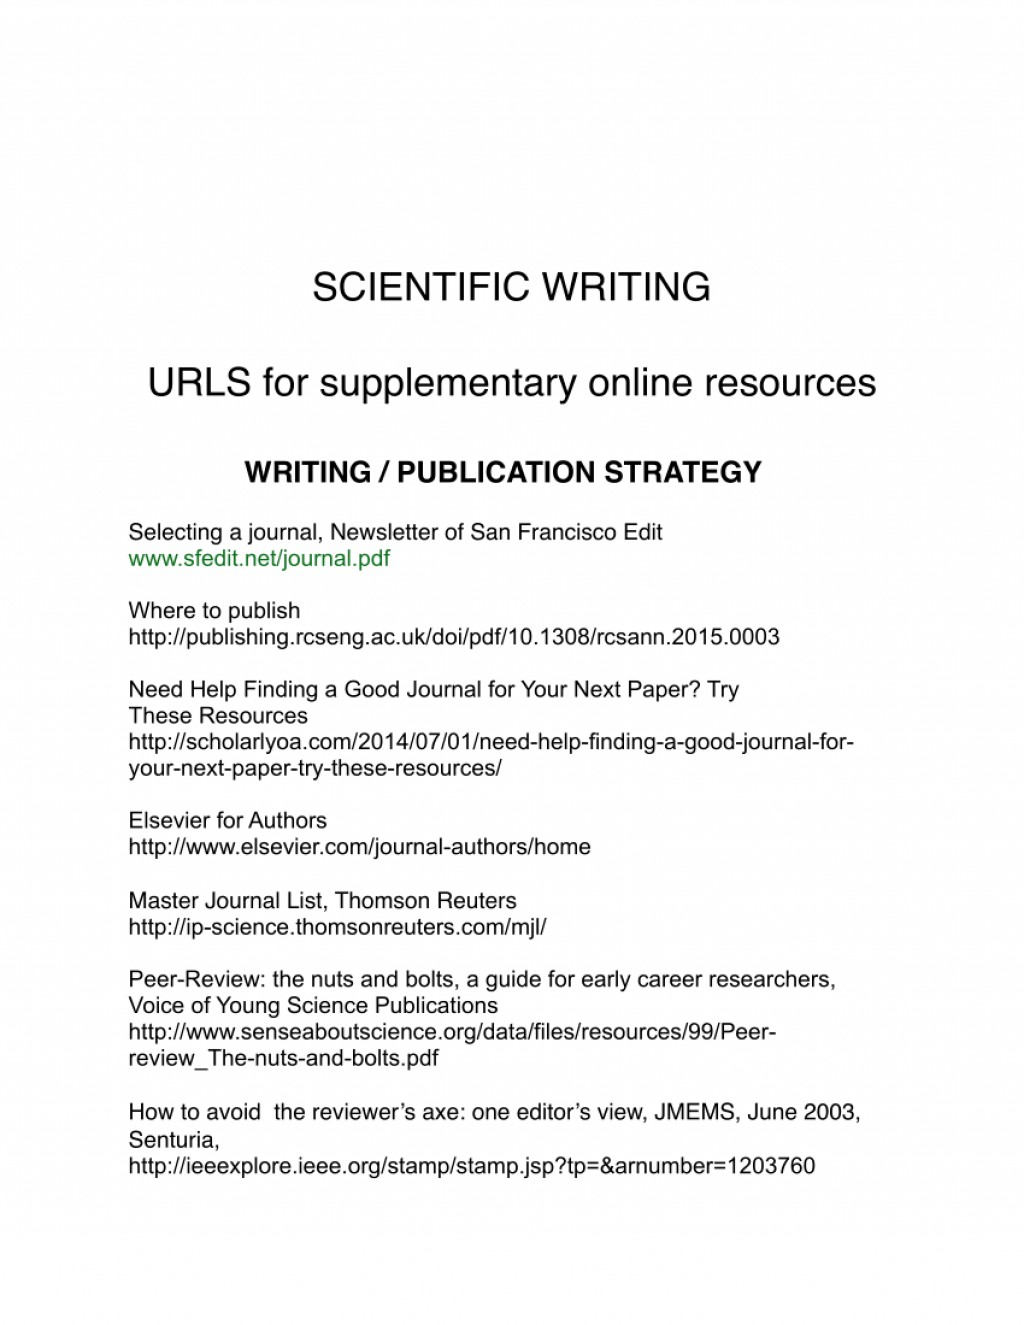 006 How To Write And Publish Scientific Research Paper Pdf Surprising A Large